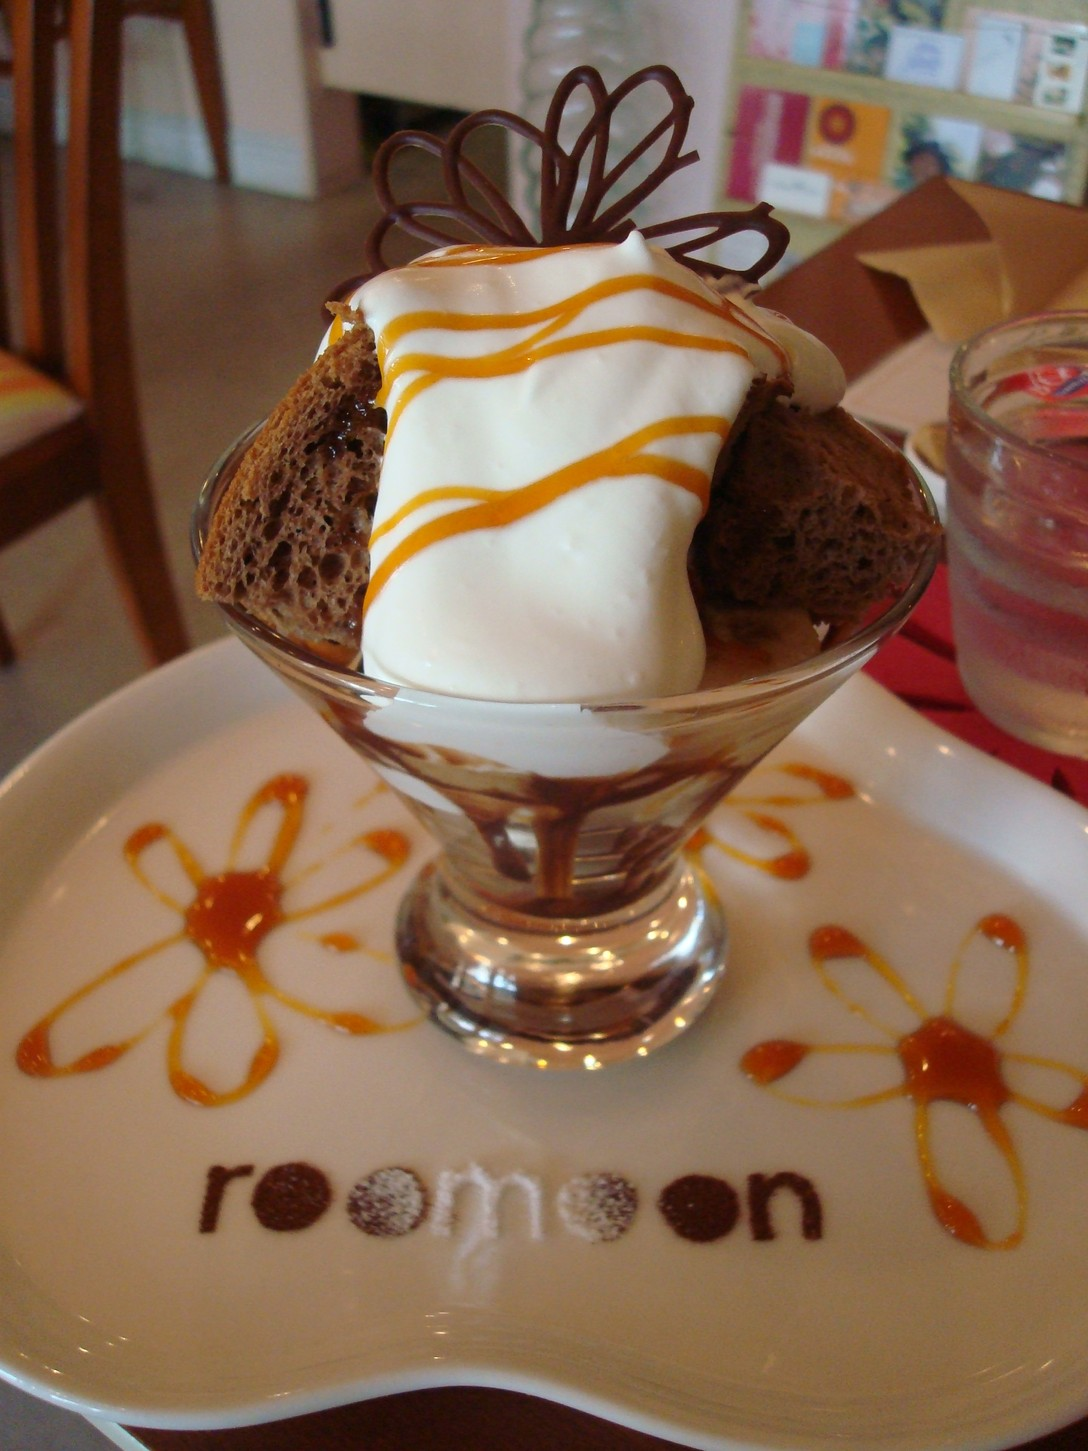 roomoon cafe